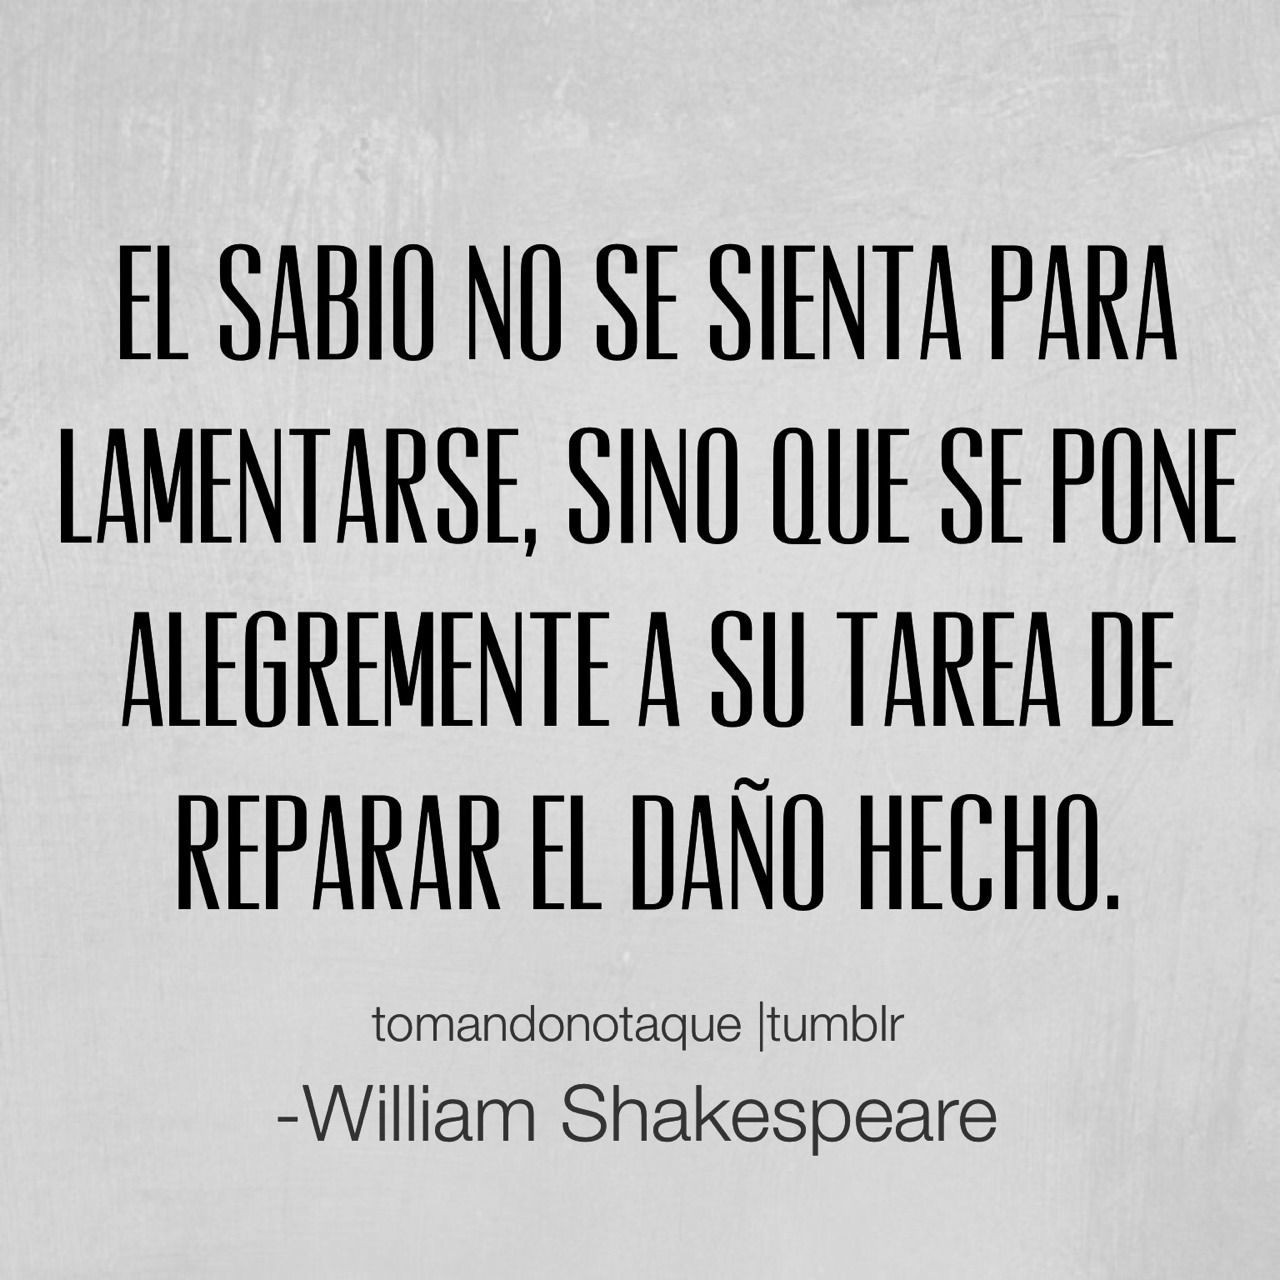 Frases De William Shakespeare Imagenes Con Frases William